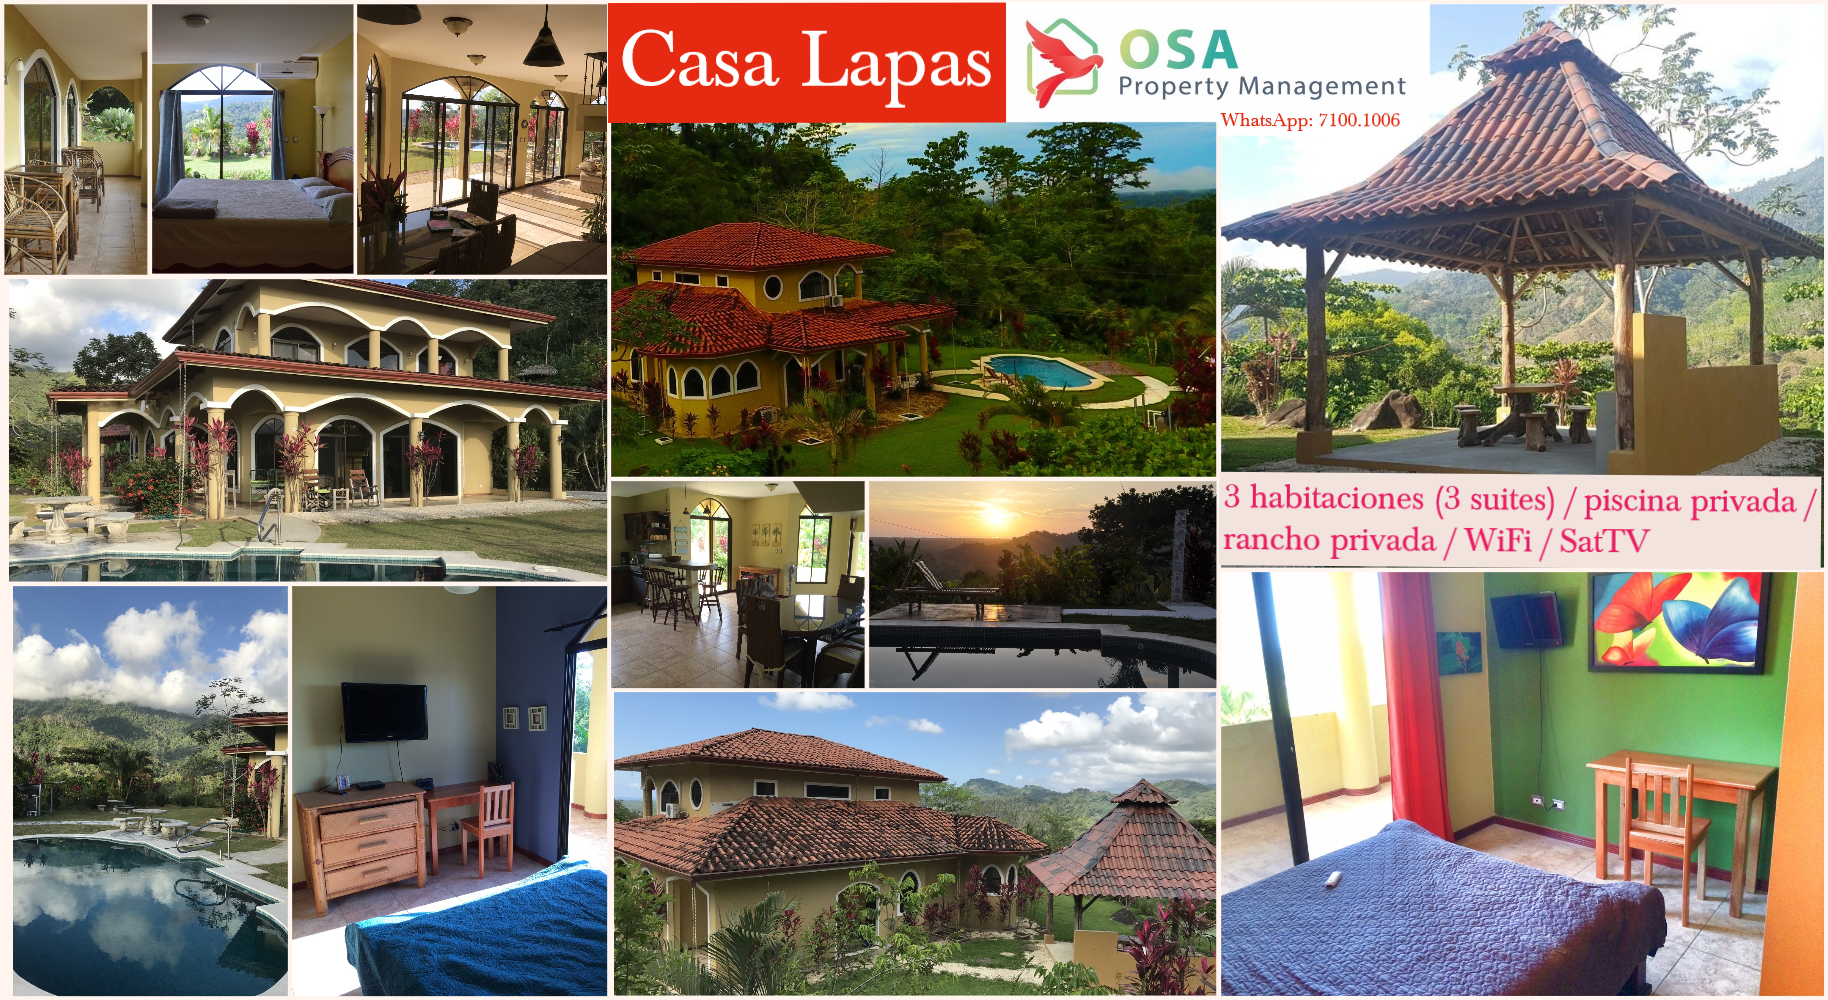 casa lapas costa rica vacation rental